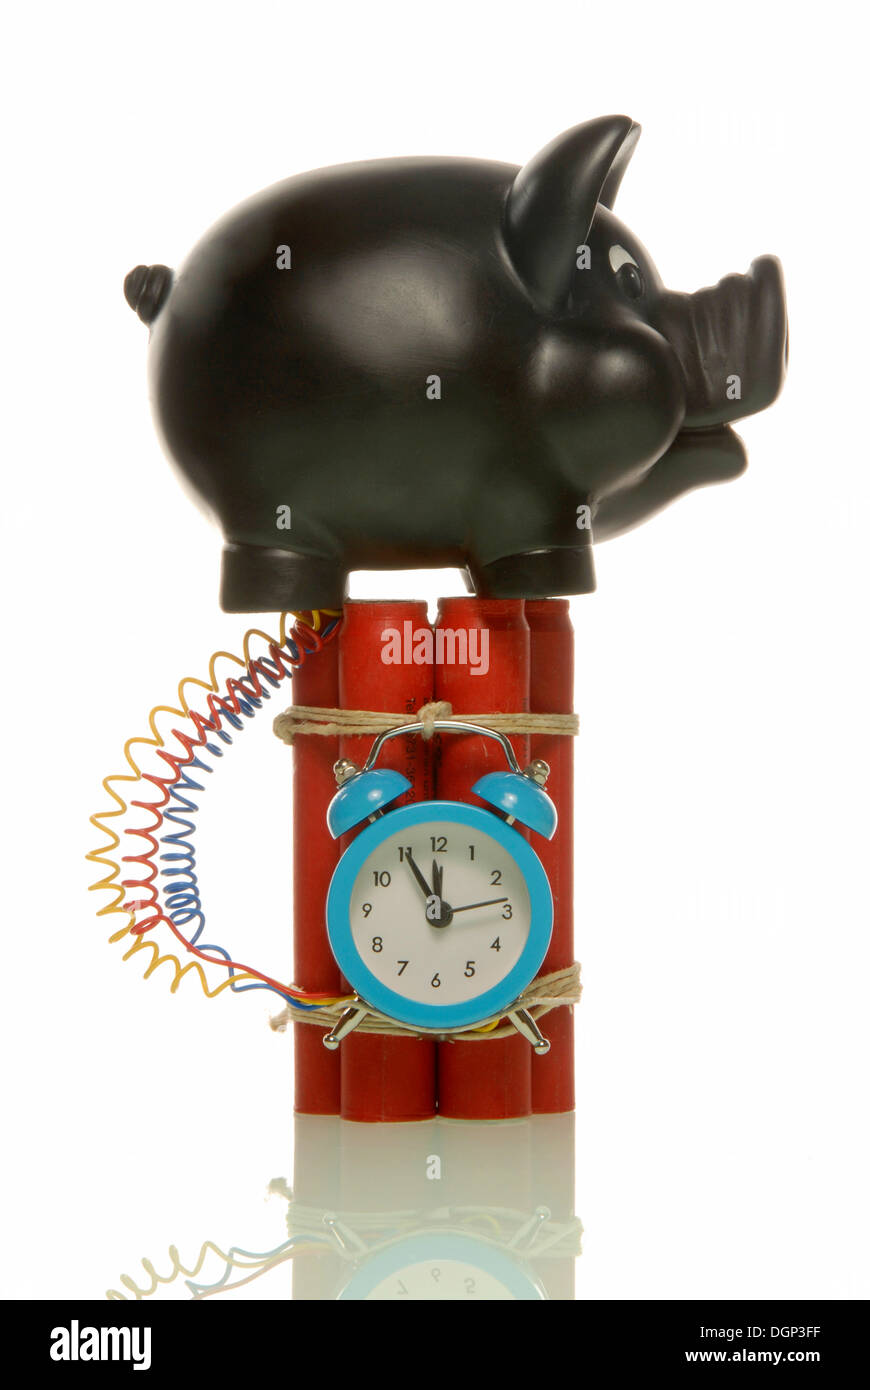 Piggy bank on a bomb, symbolic image for risky savings - Stock Image